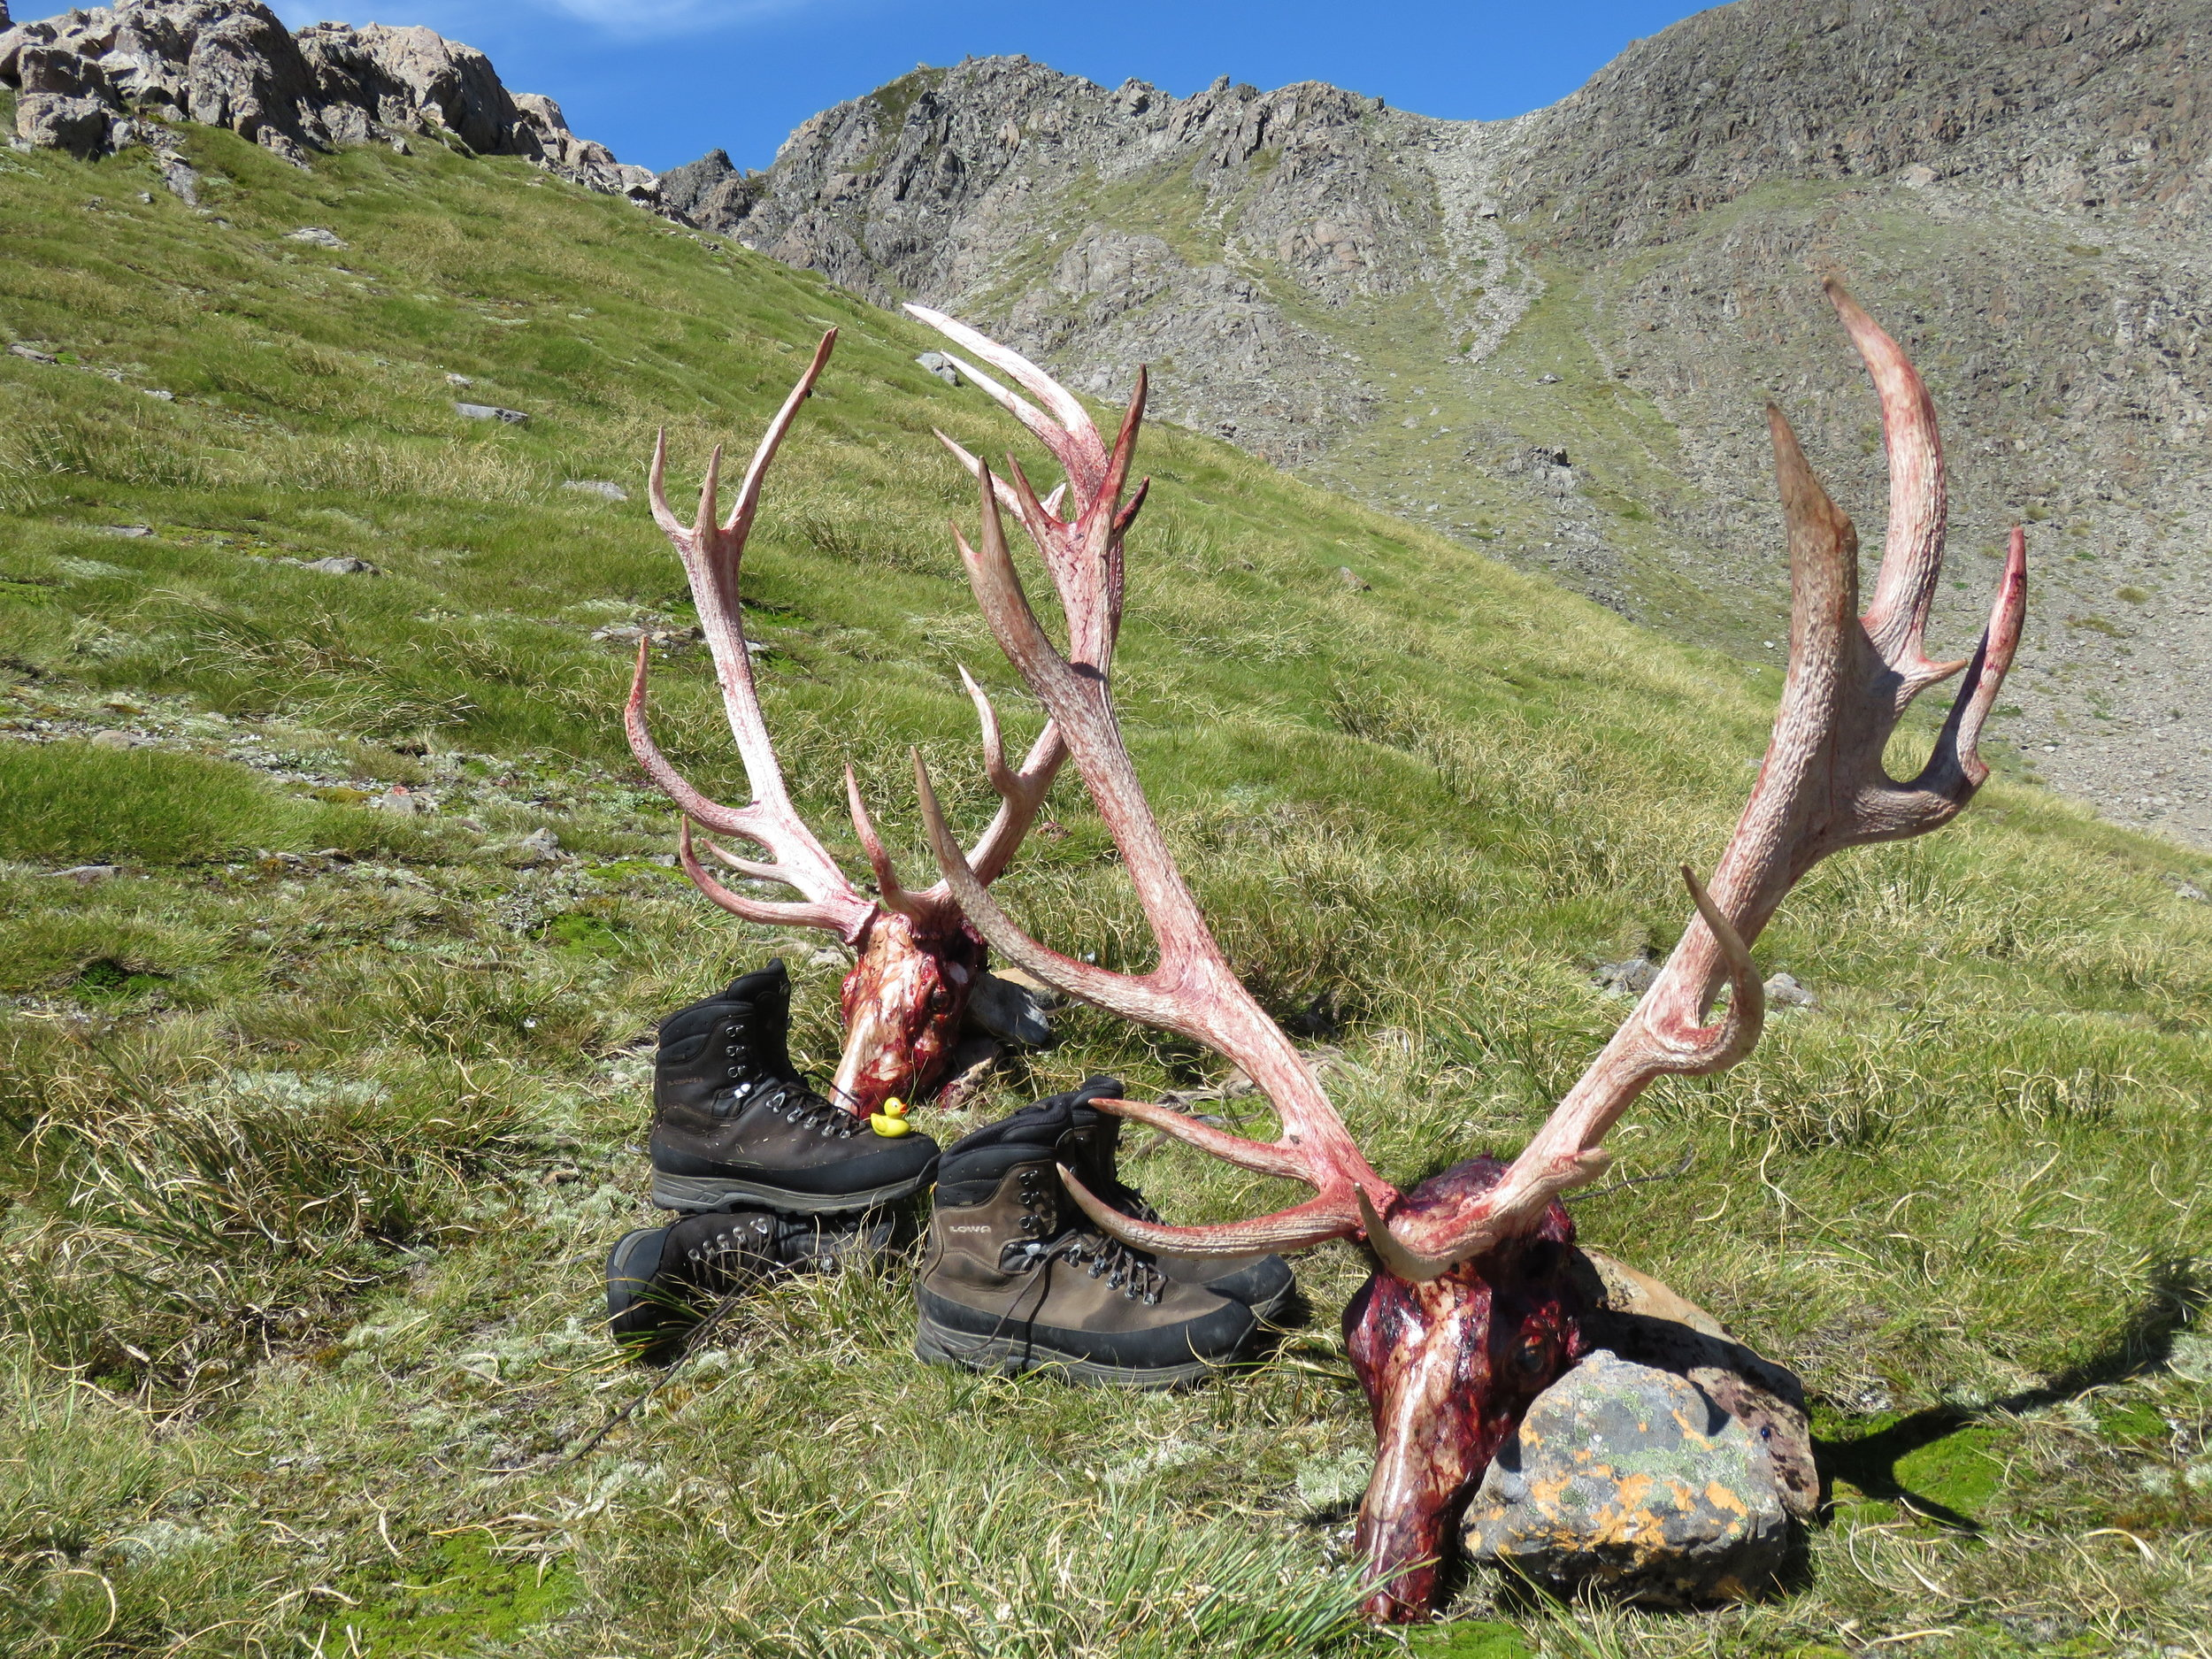 The main divide red stags on display with the Lowa boots